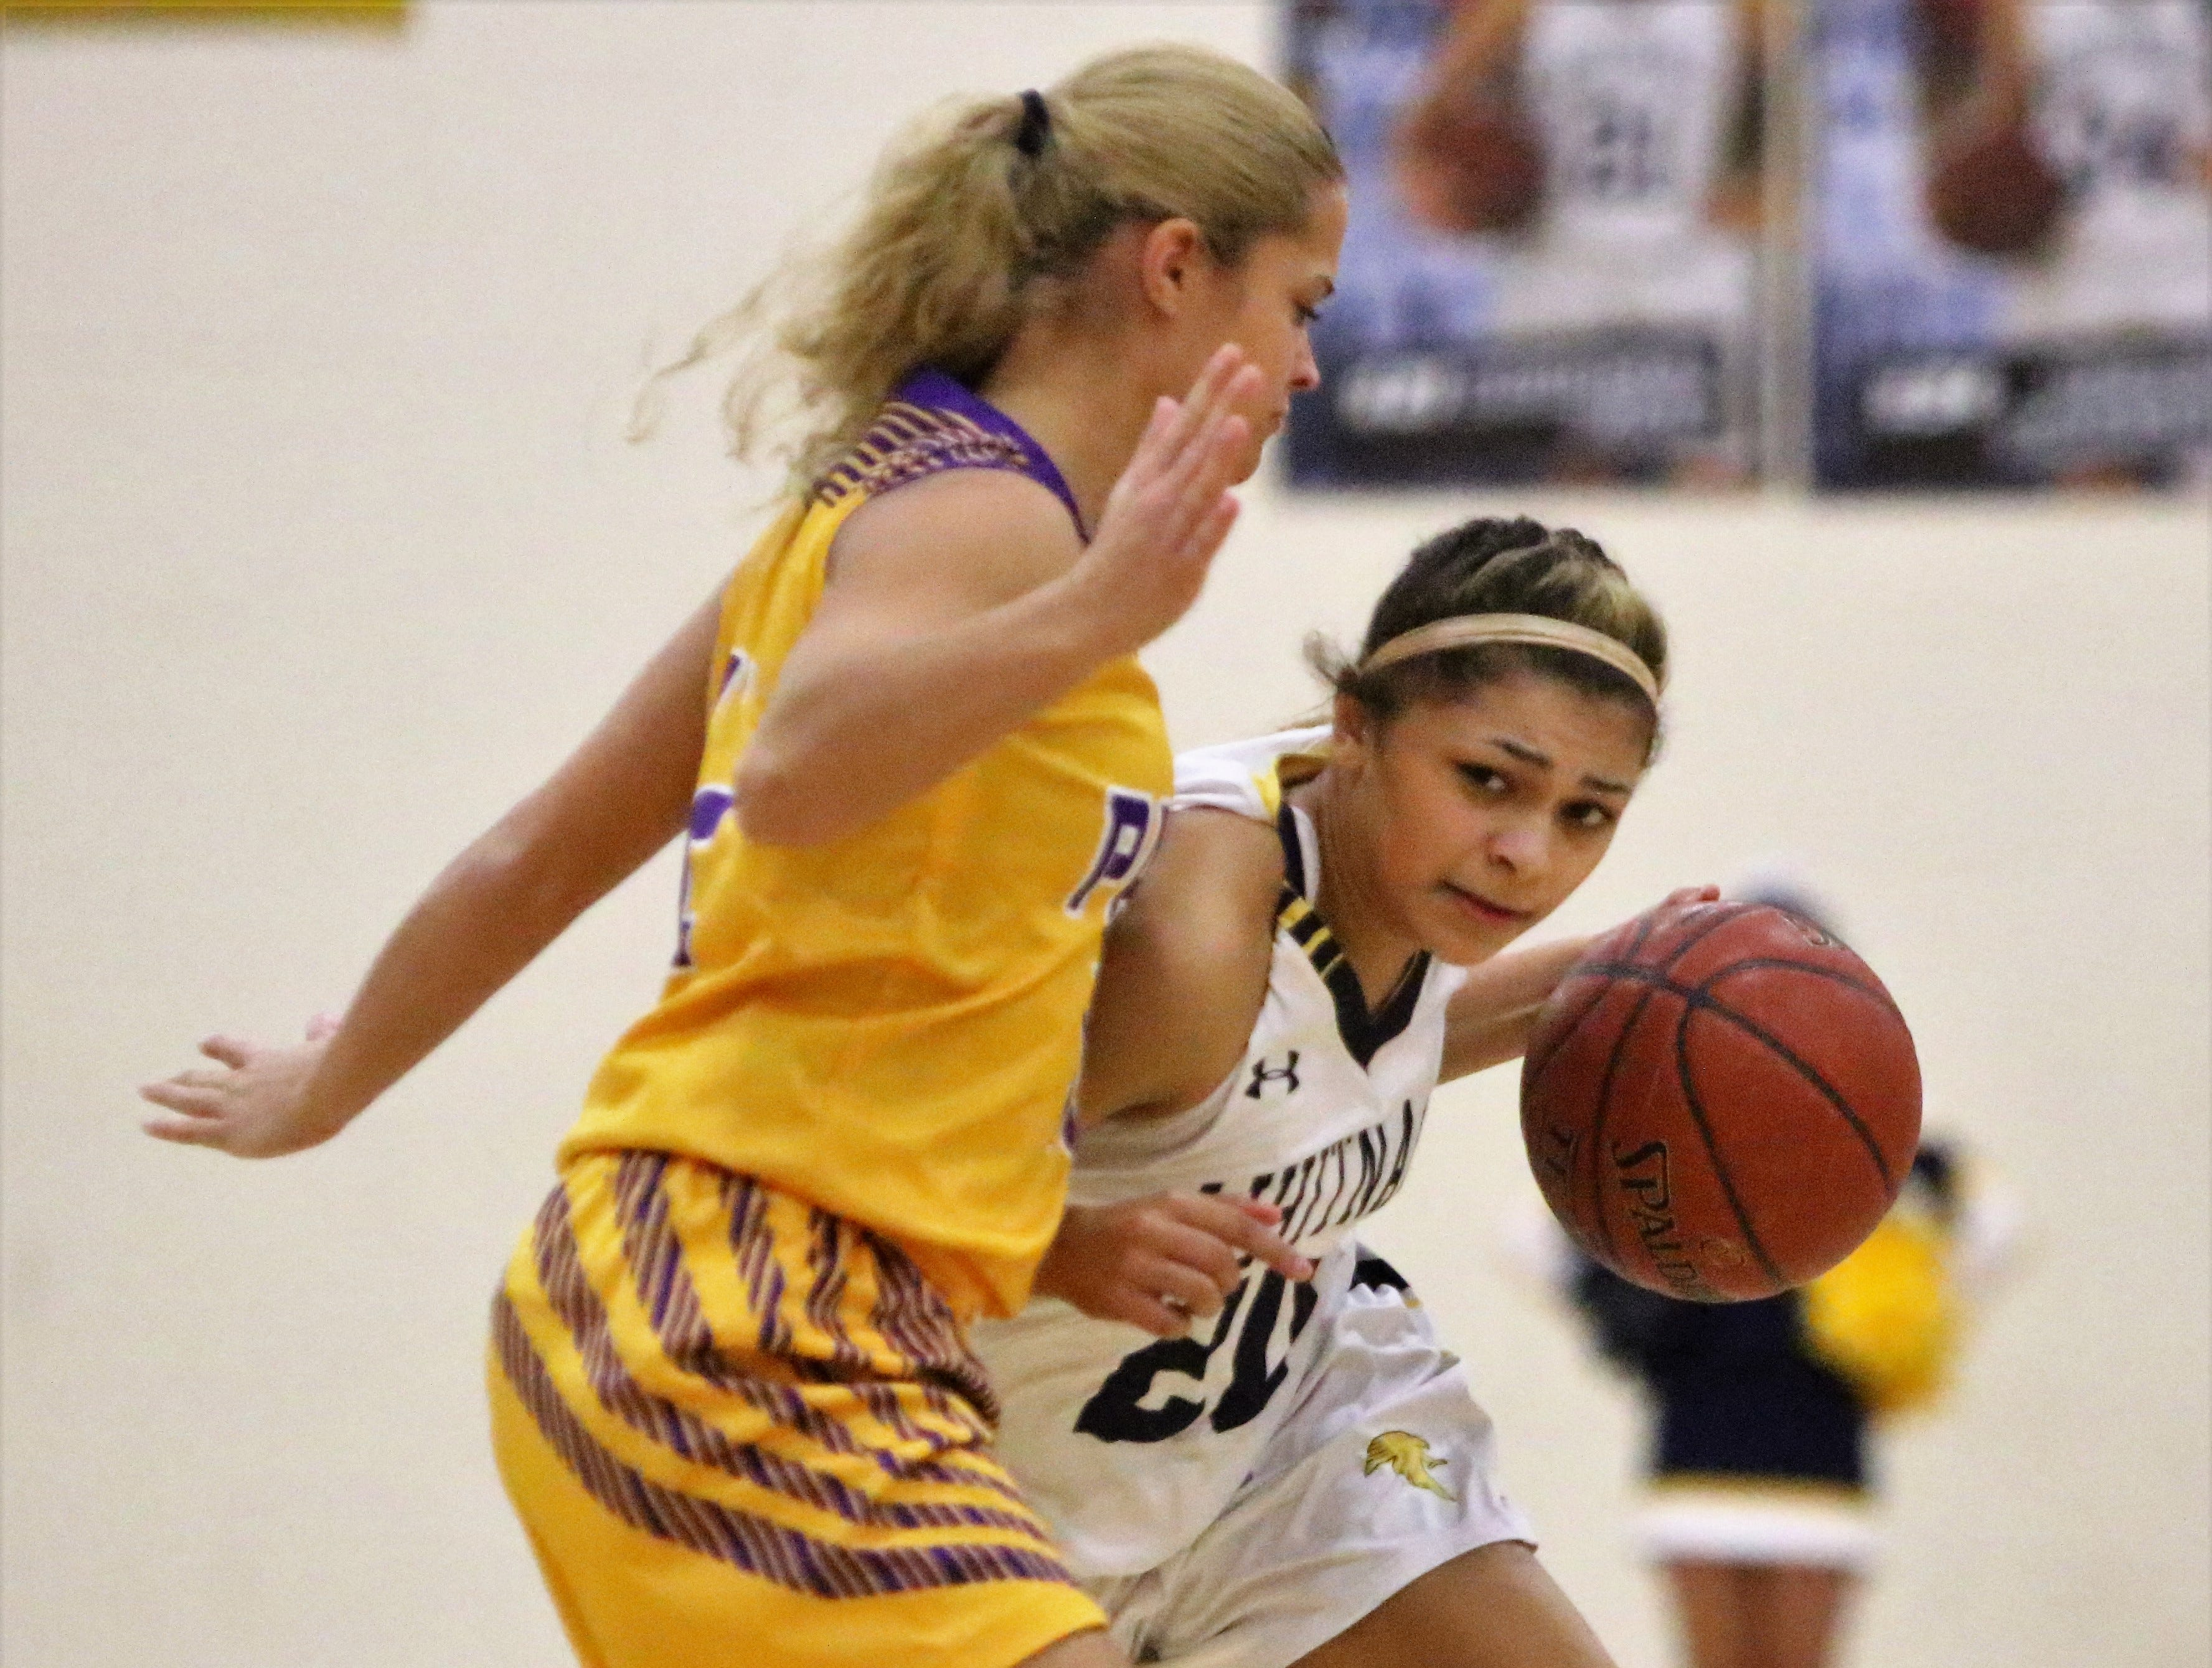 Whitnall guard Christina Kelley works to get past Cudahy guard Camryn Kratt during a game on Feb. 8, 2019.